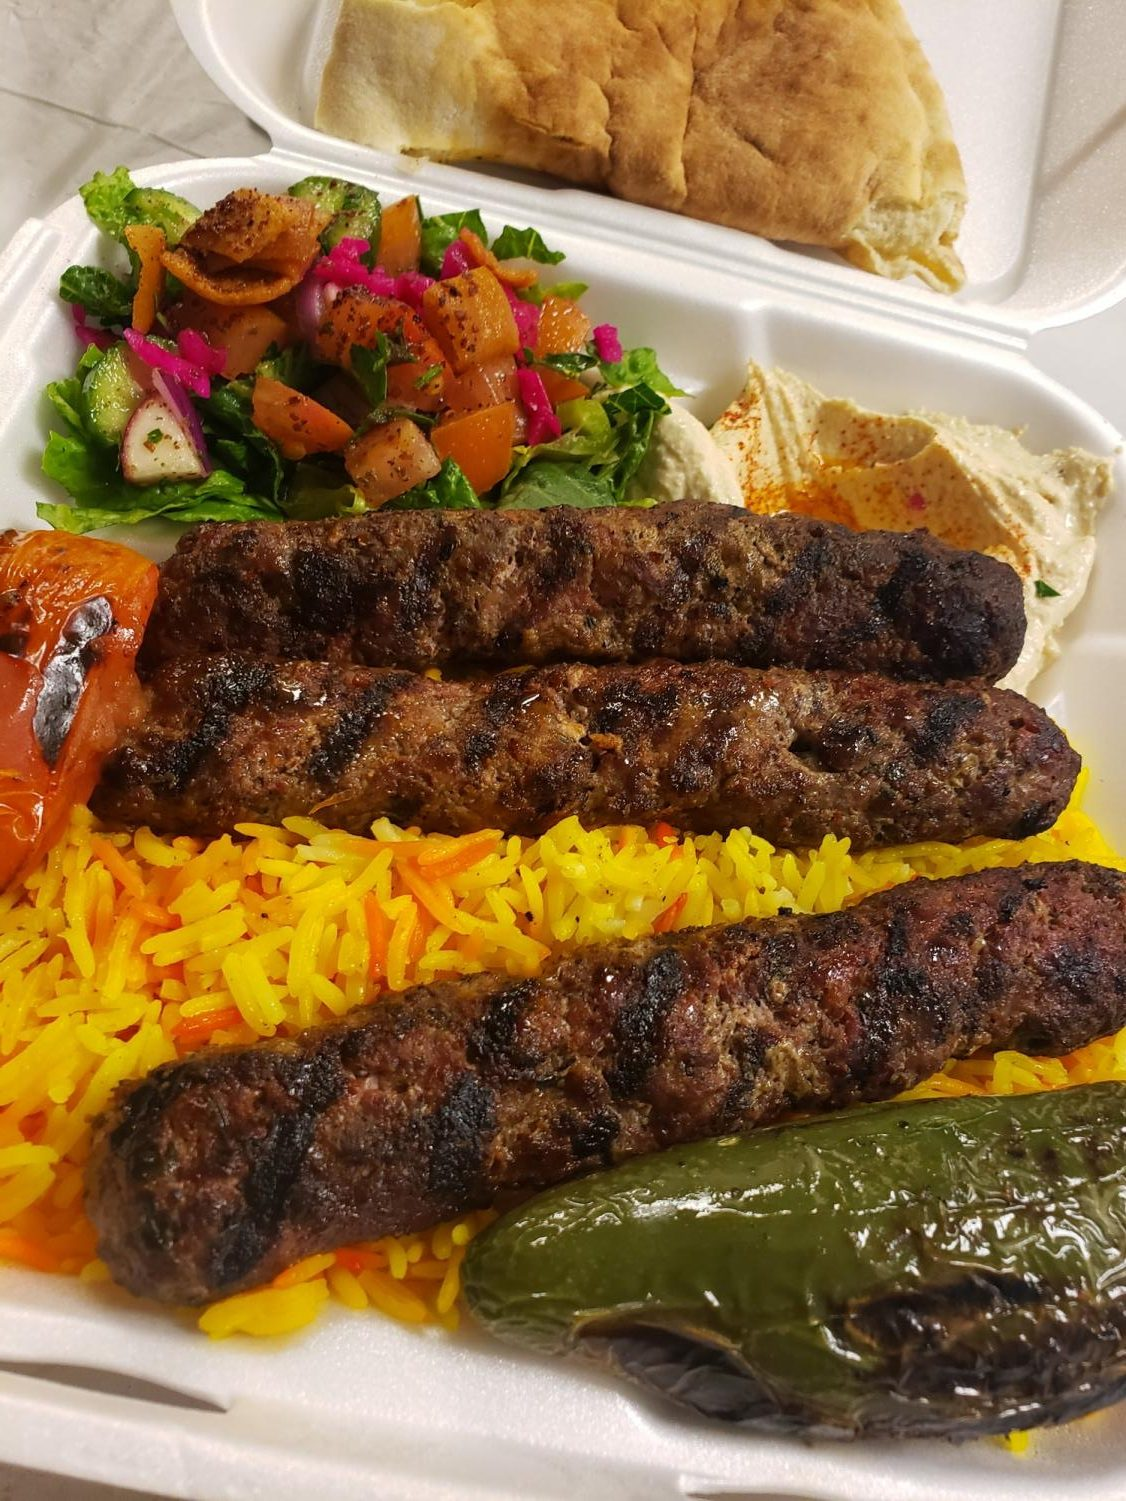 Beef Kafta plate with a delicious house salad and yellow jasmine rice to tie-in everything together.